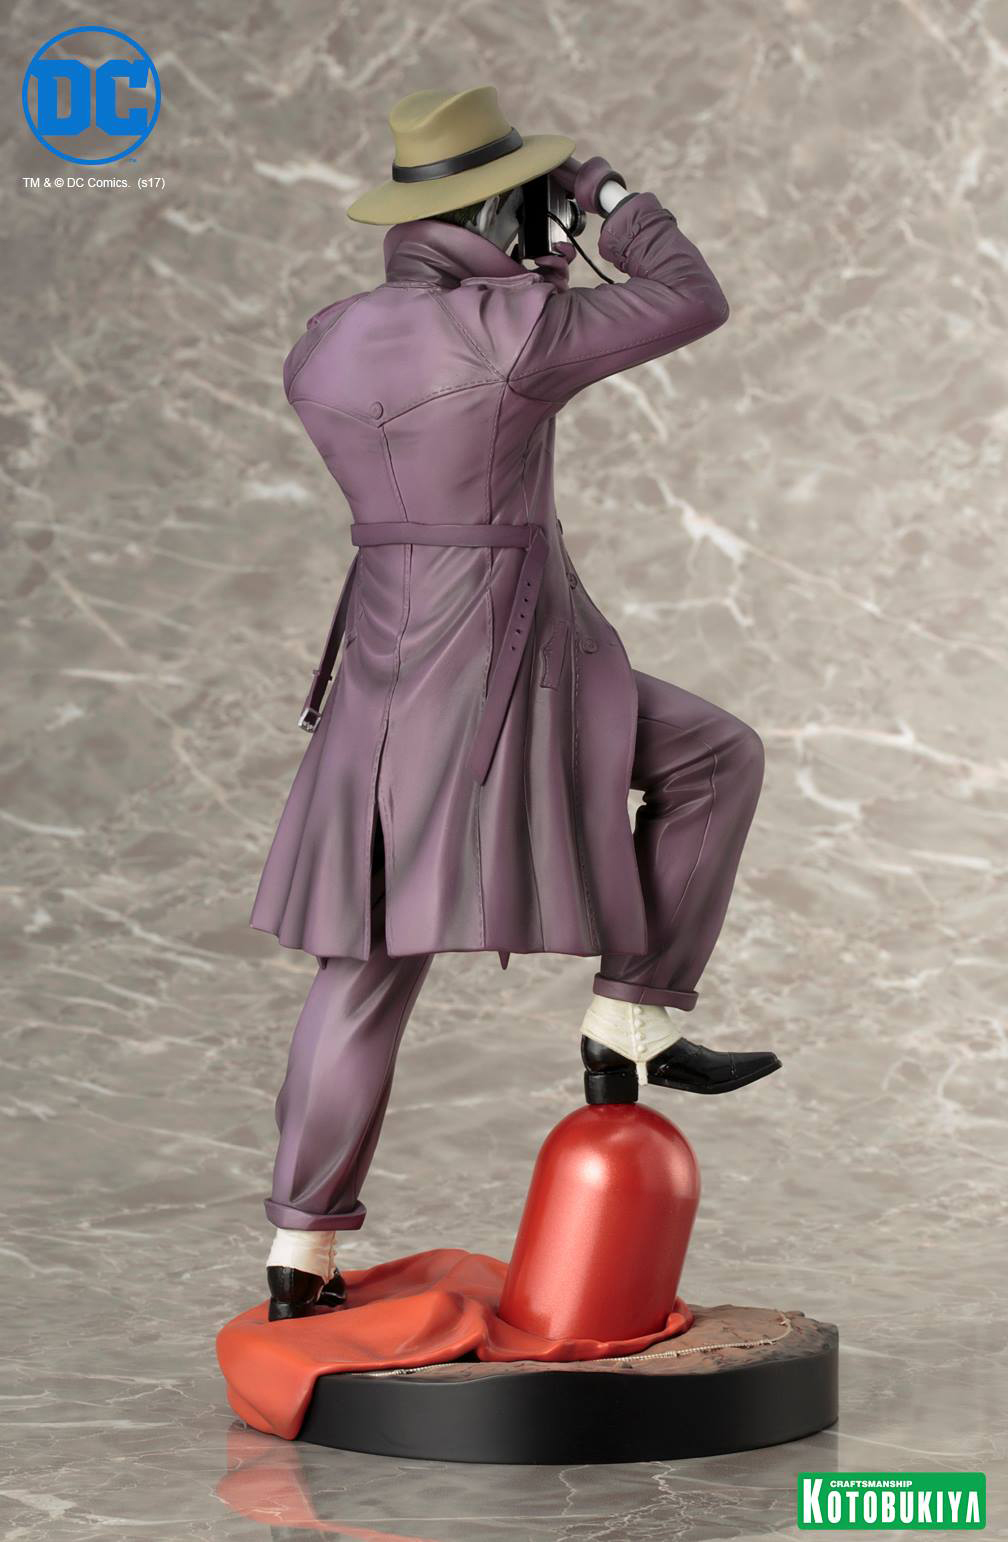 kotobukiya-joker-the-killing-joke-statue-4